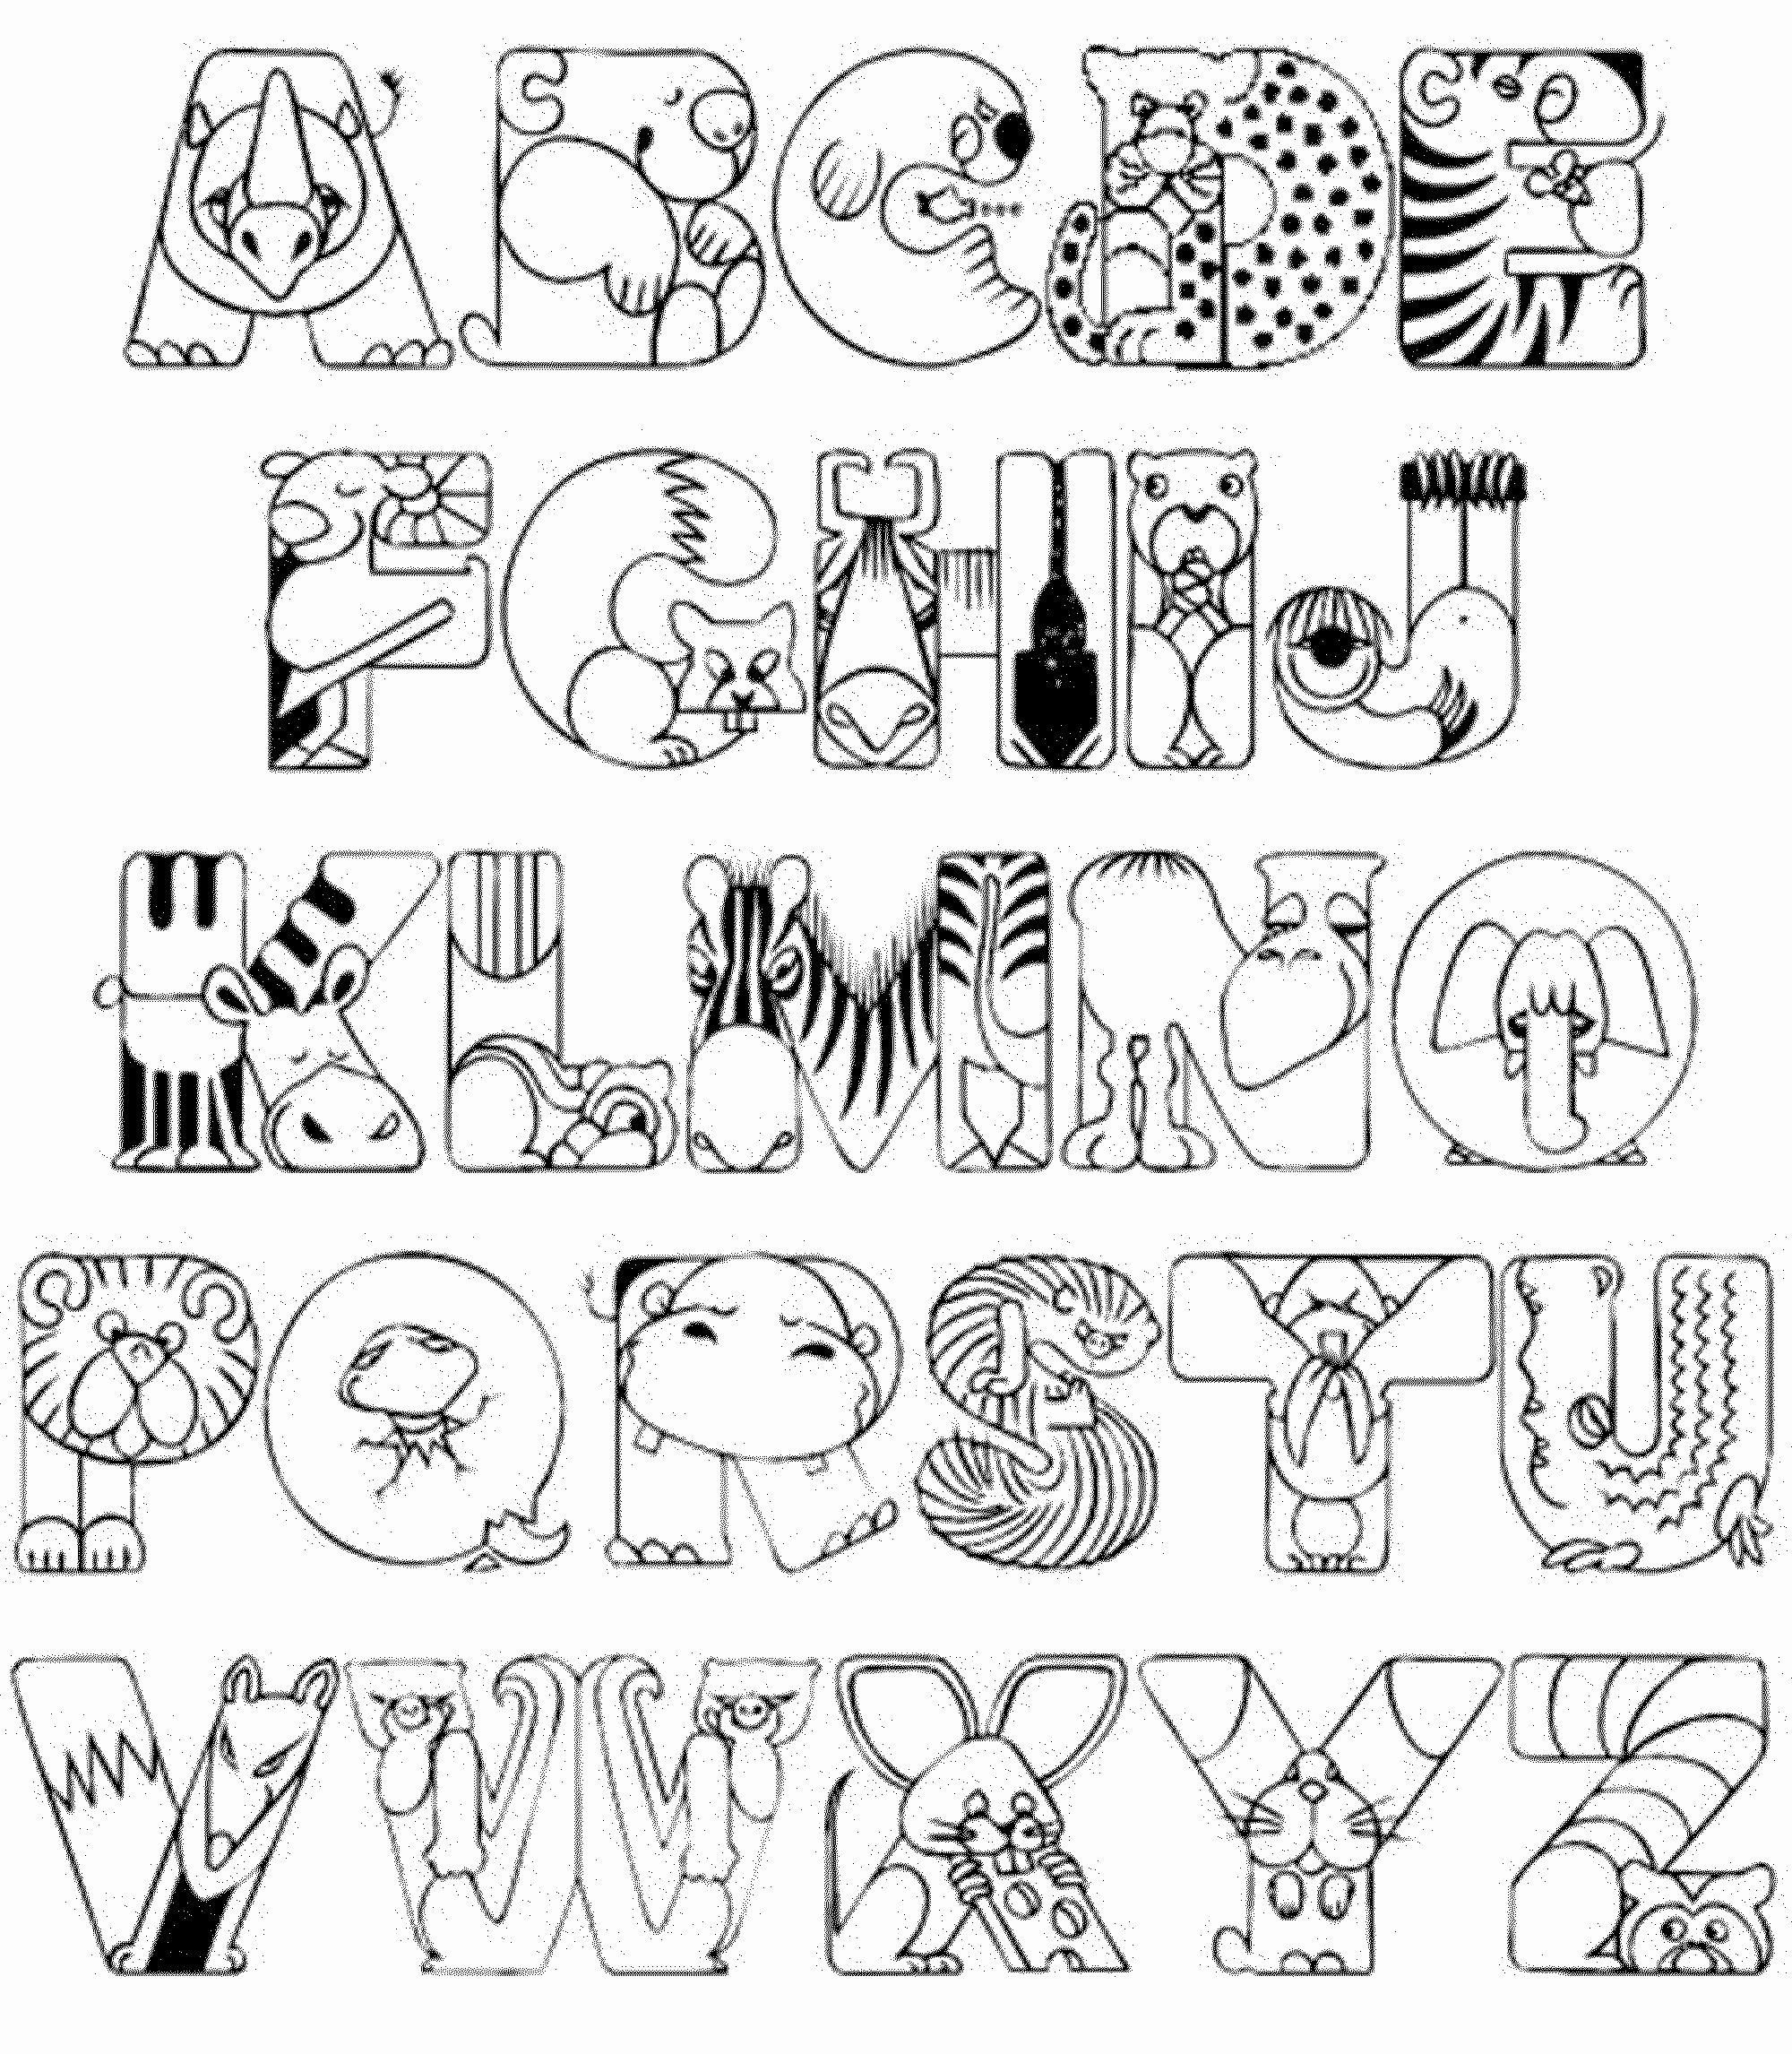 Arabic Alphabet Worksheets for Preschoolers Worksheets Coloring Remarkable Printable Arabic Alphabet